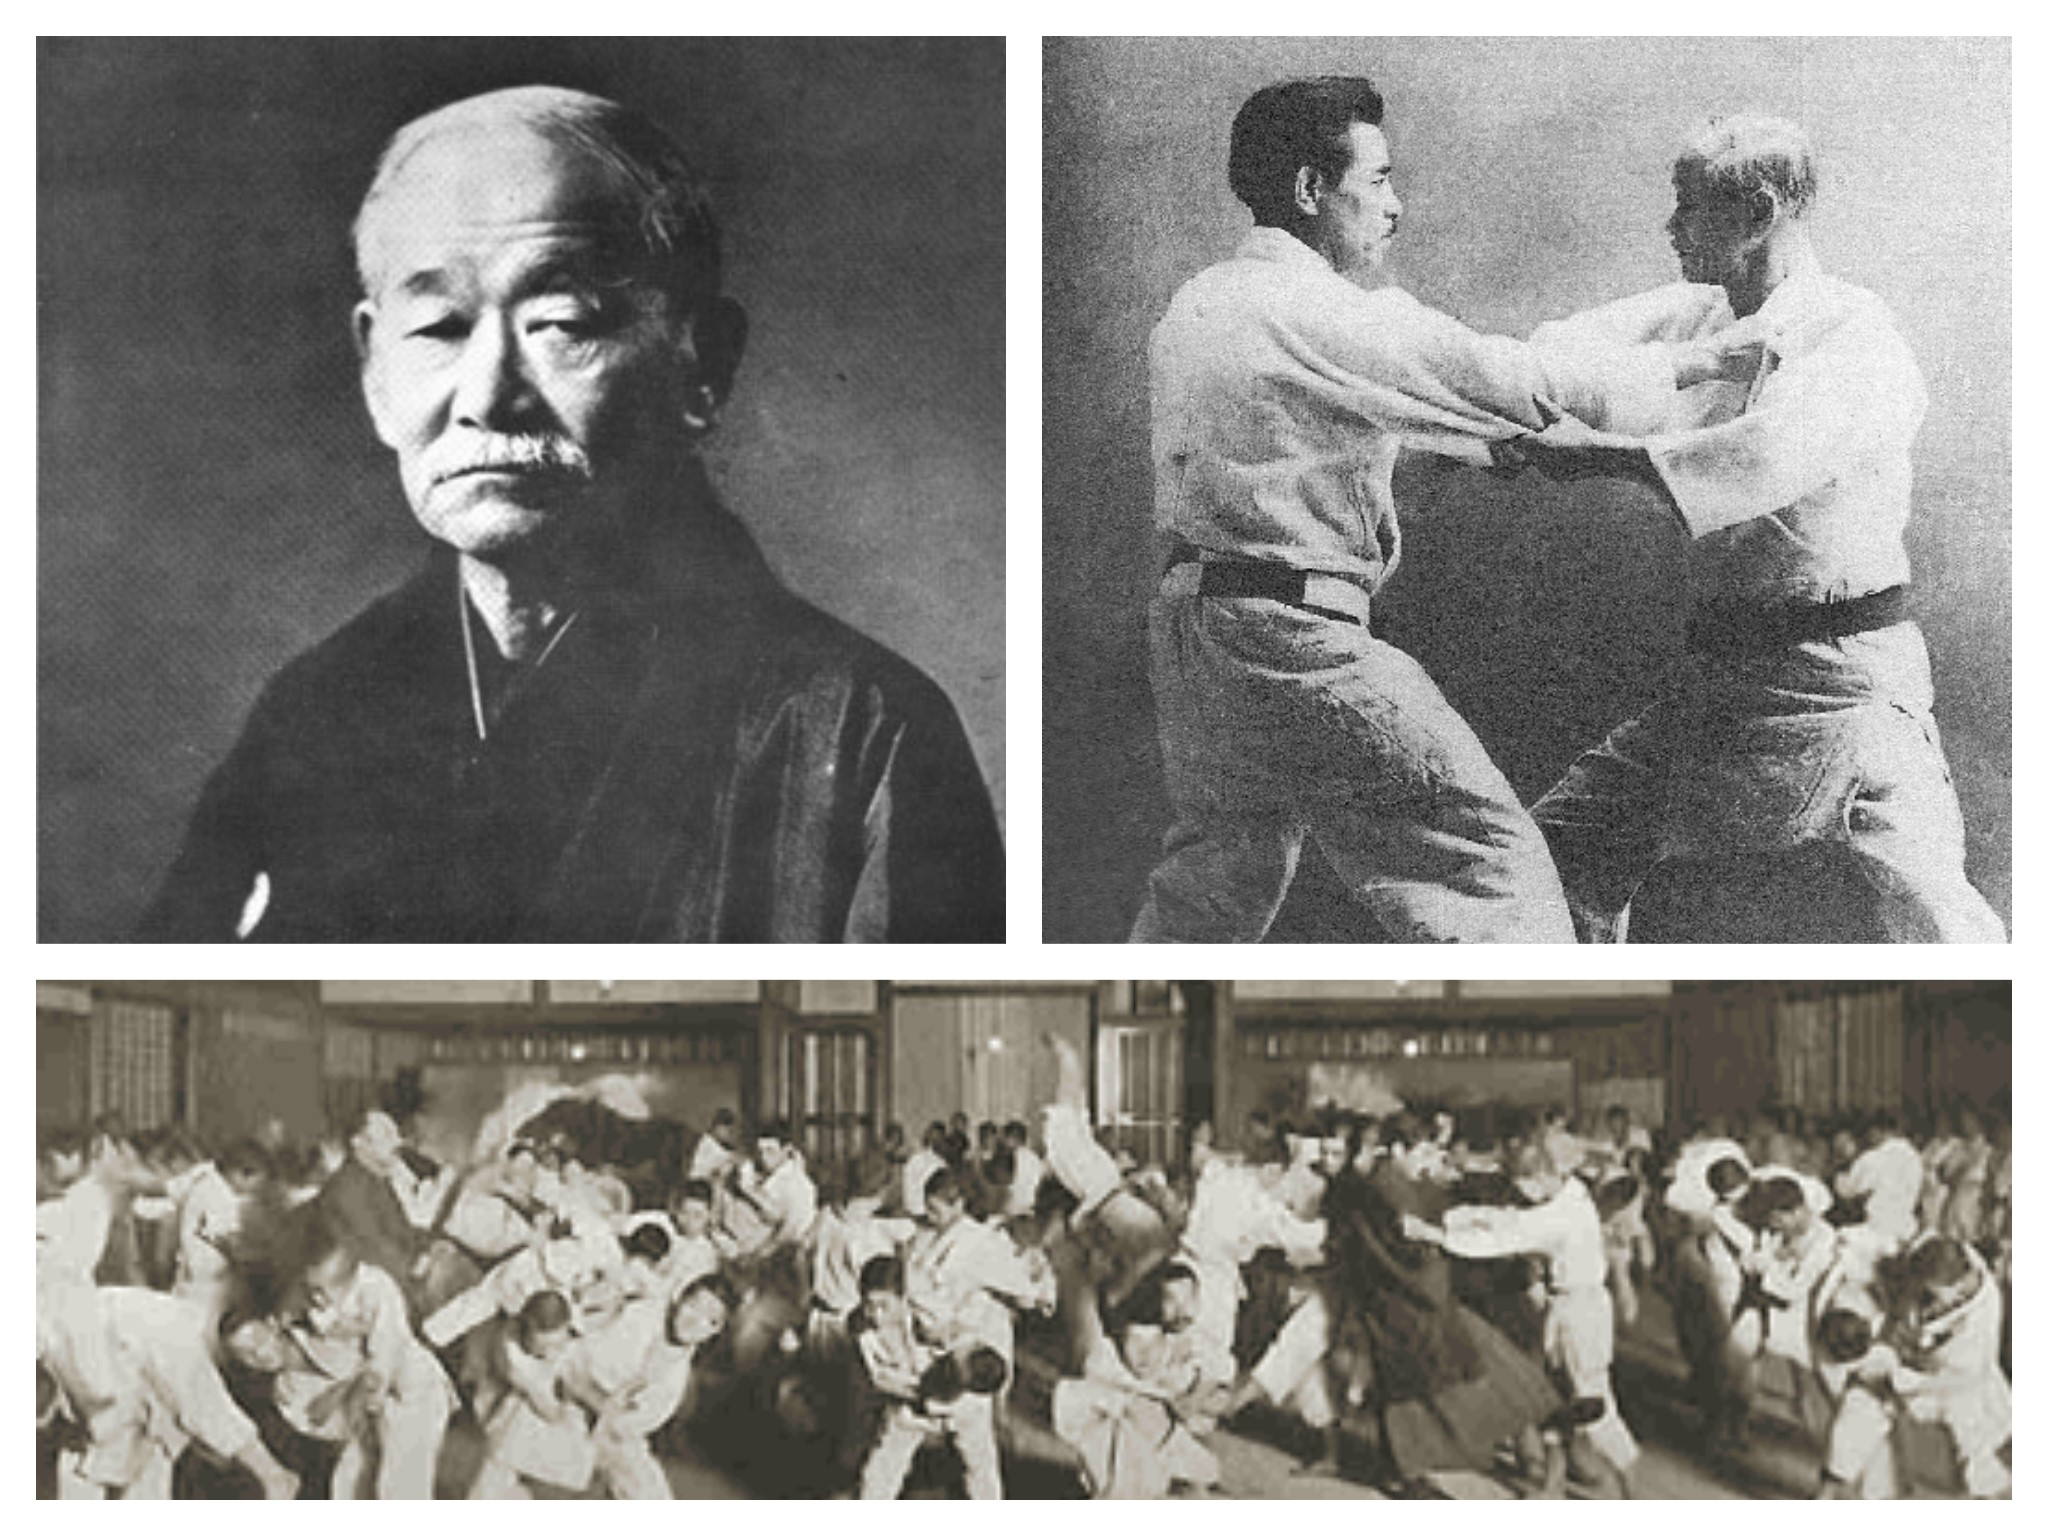 Different styles. Jigoro Kano